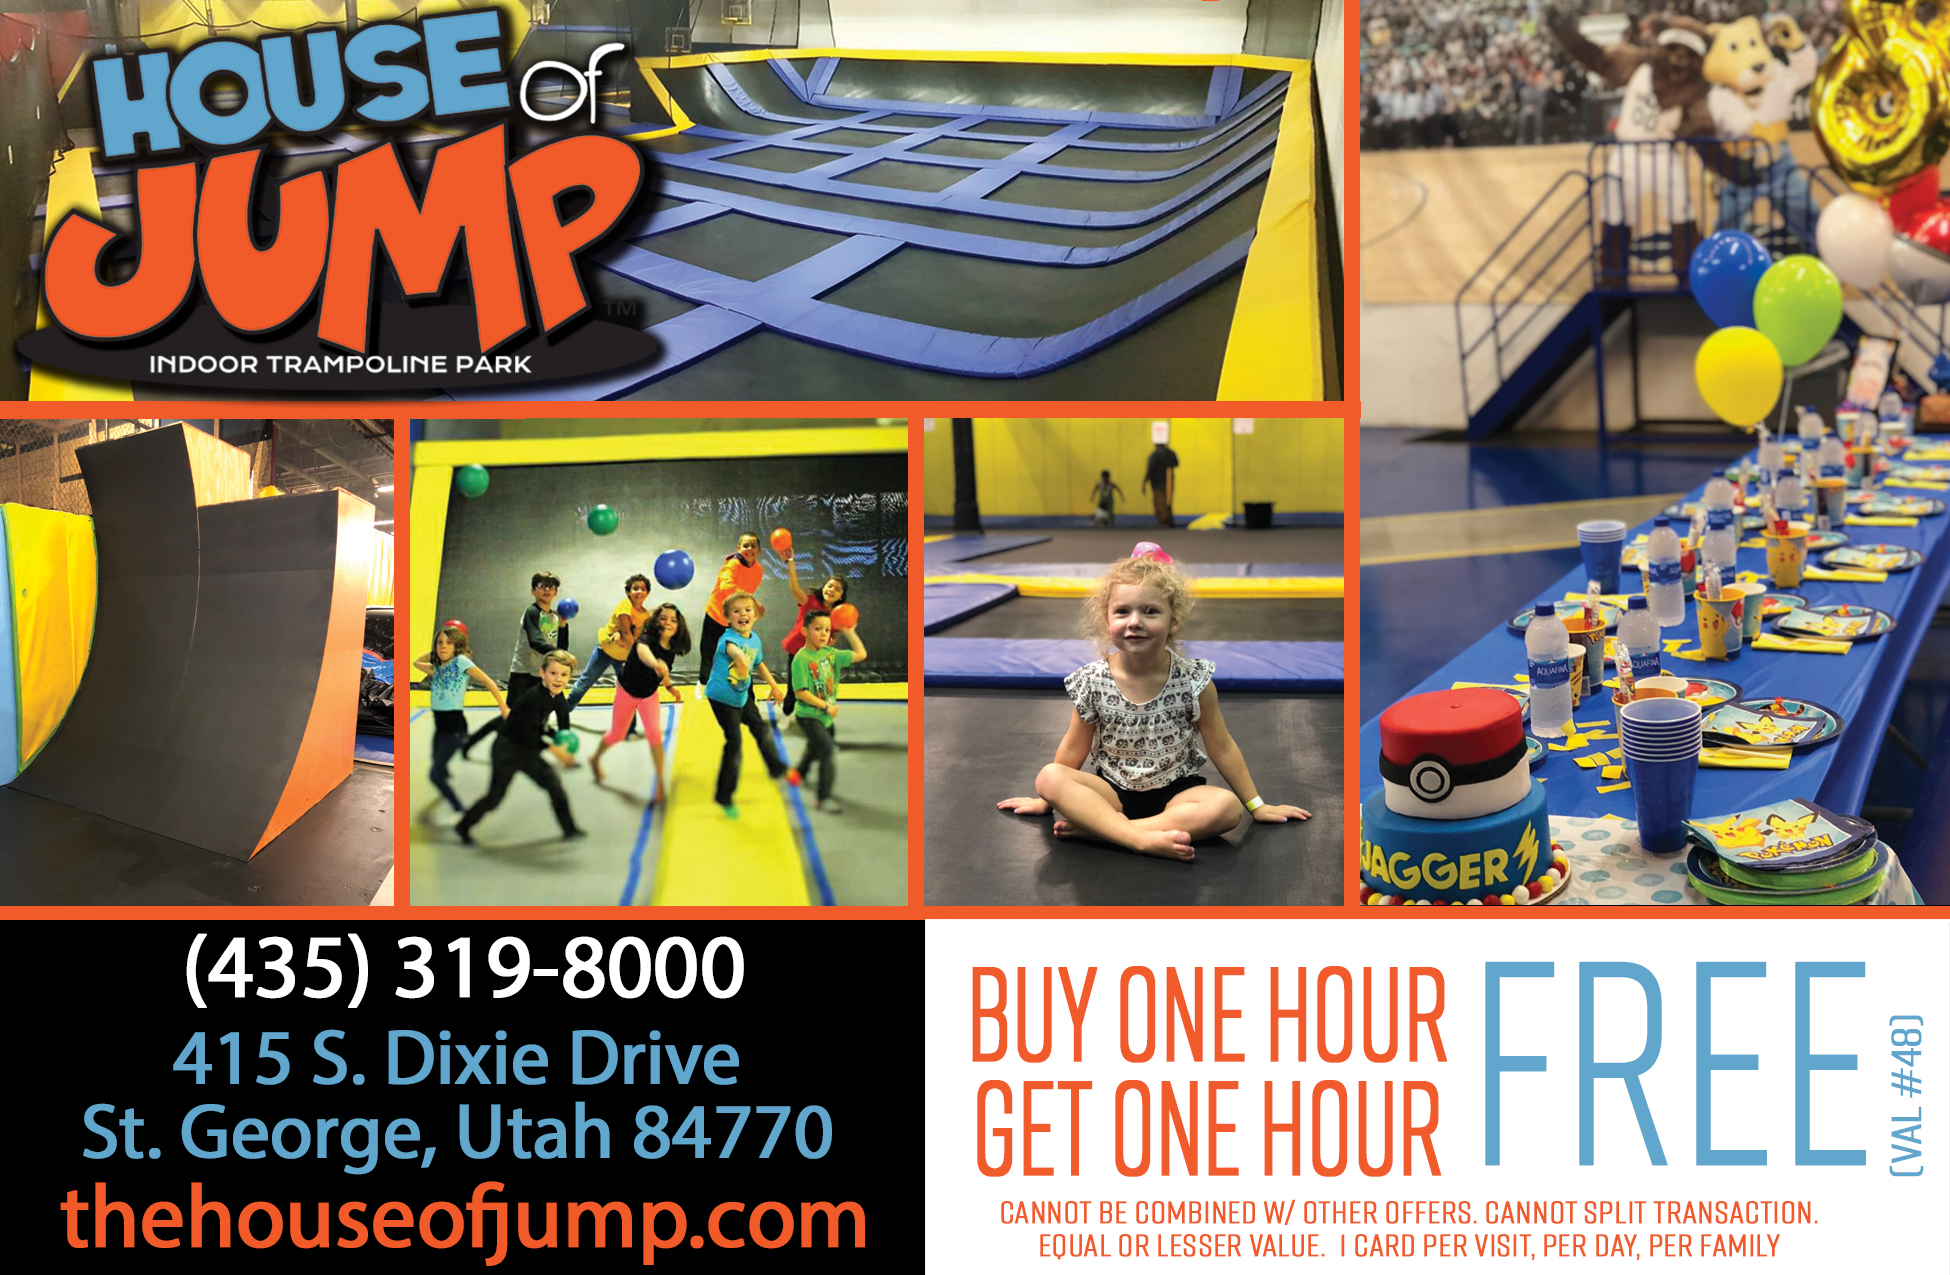 House of Jump - Indoor Trampoline Park